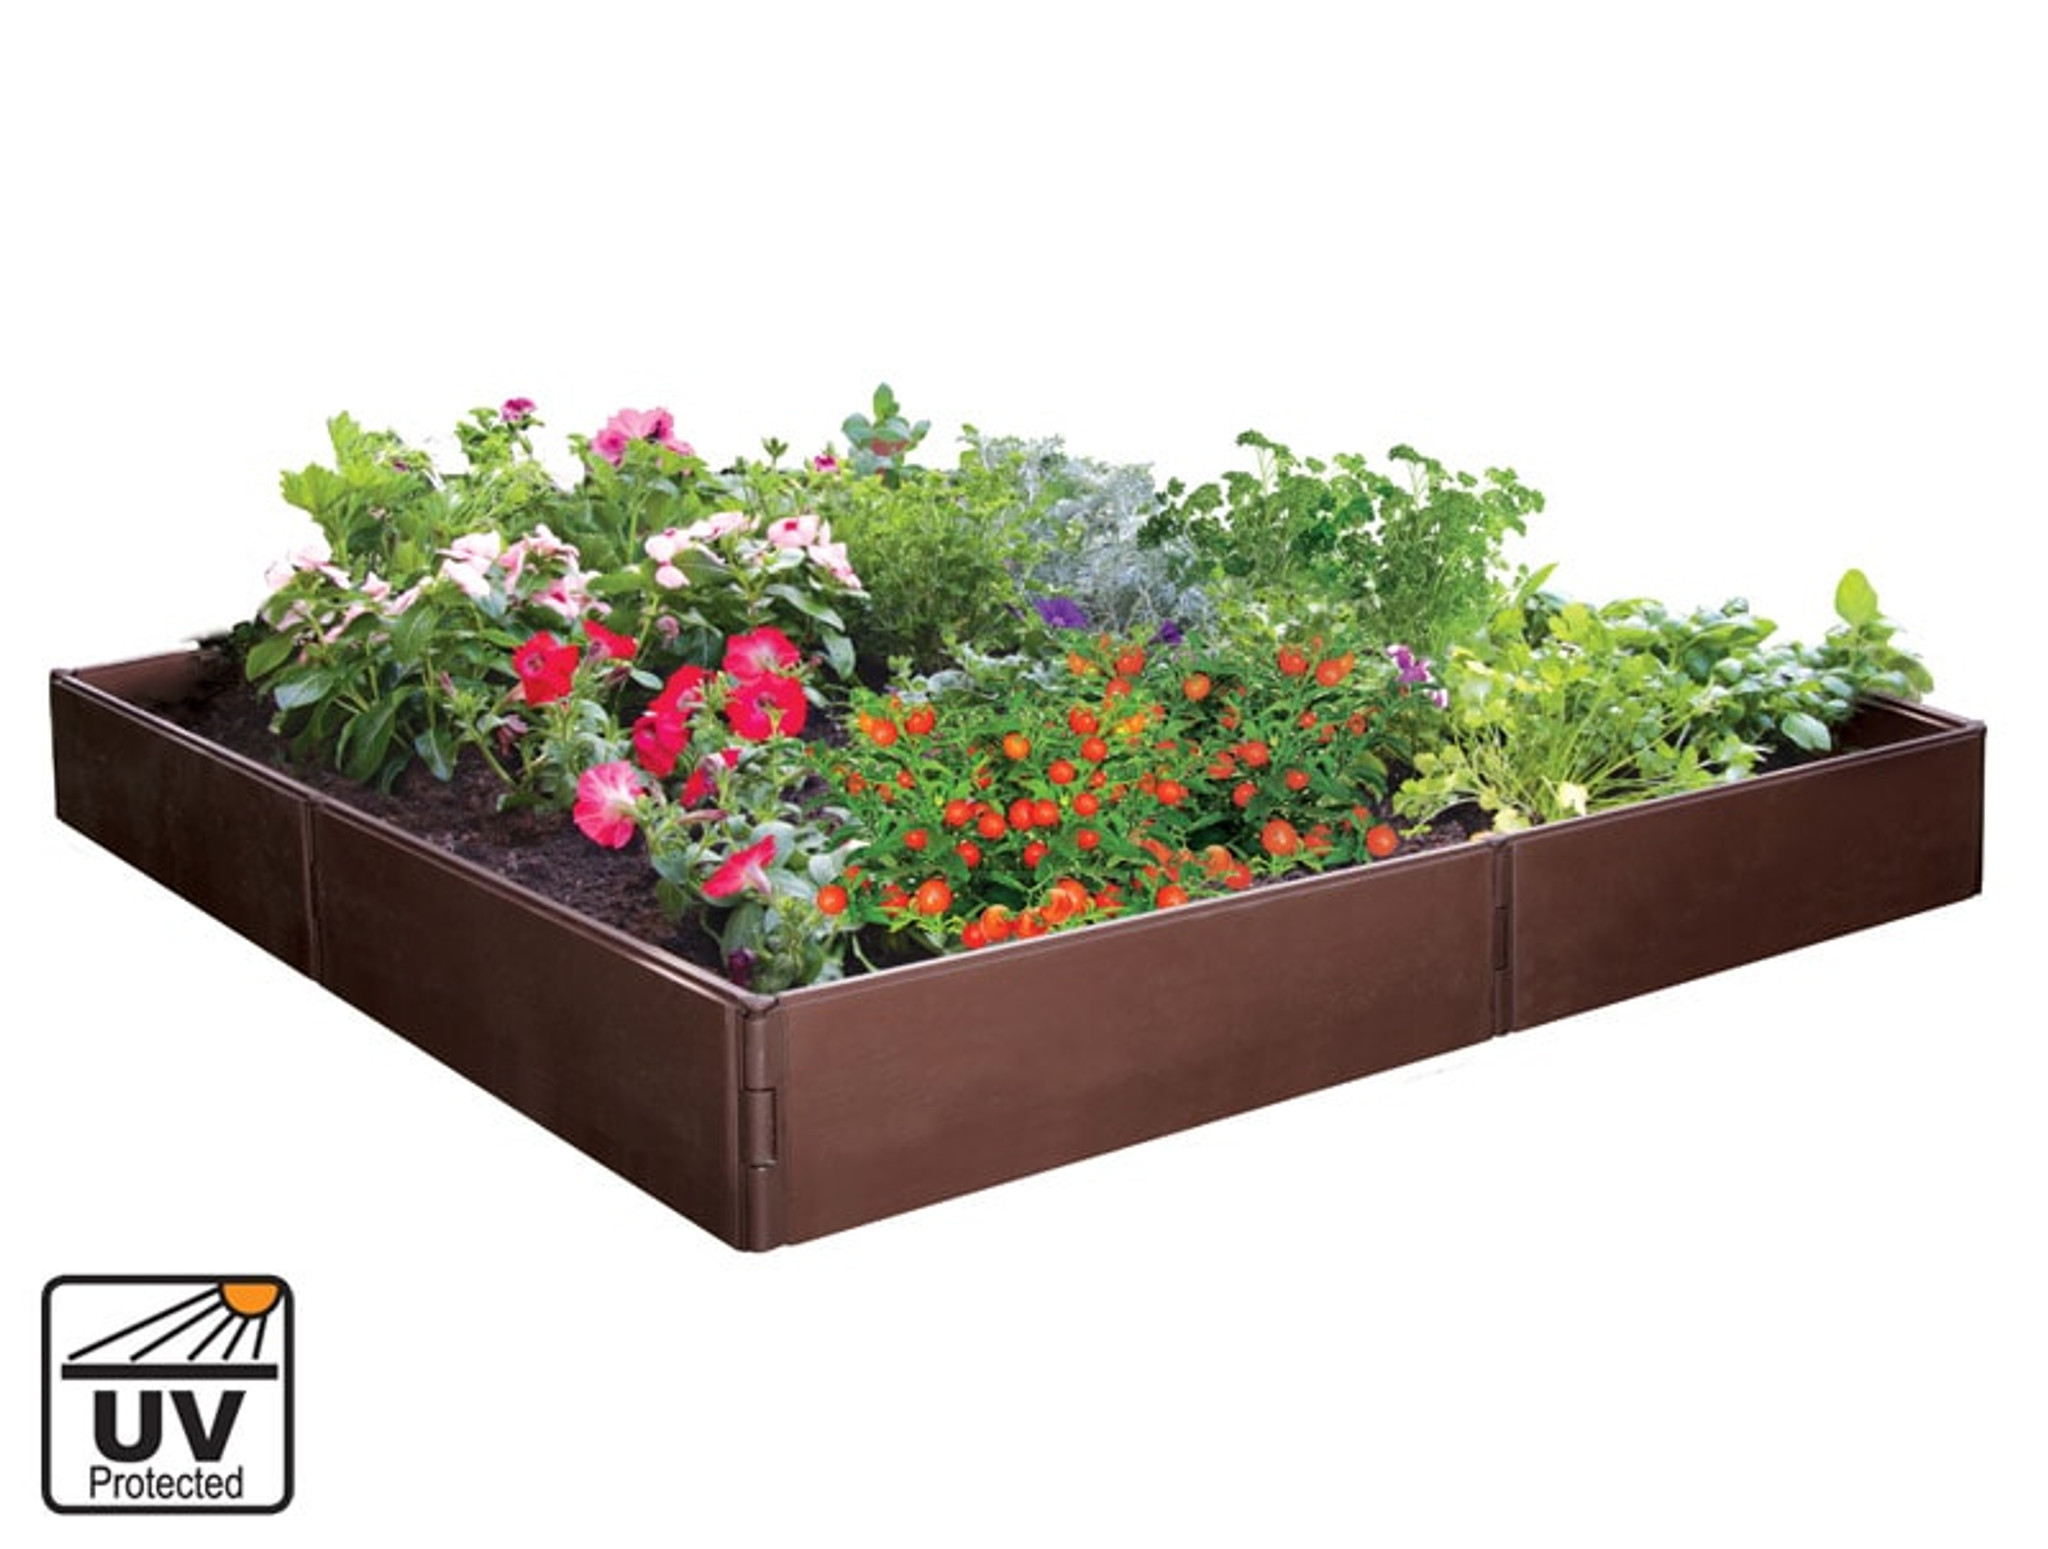 Picture of: Plastic Raised Garden Bed For Vegetables Herbs And Flowers